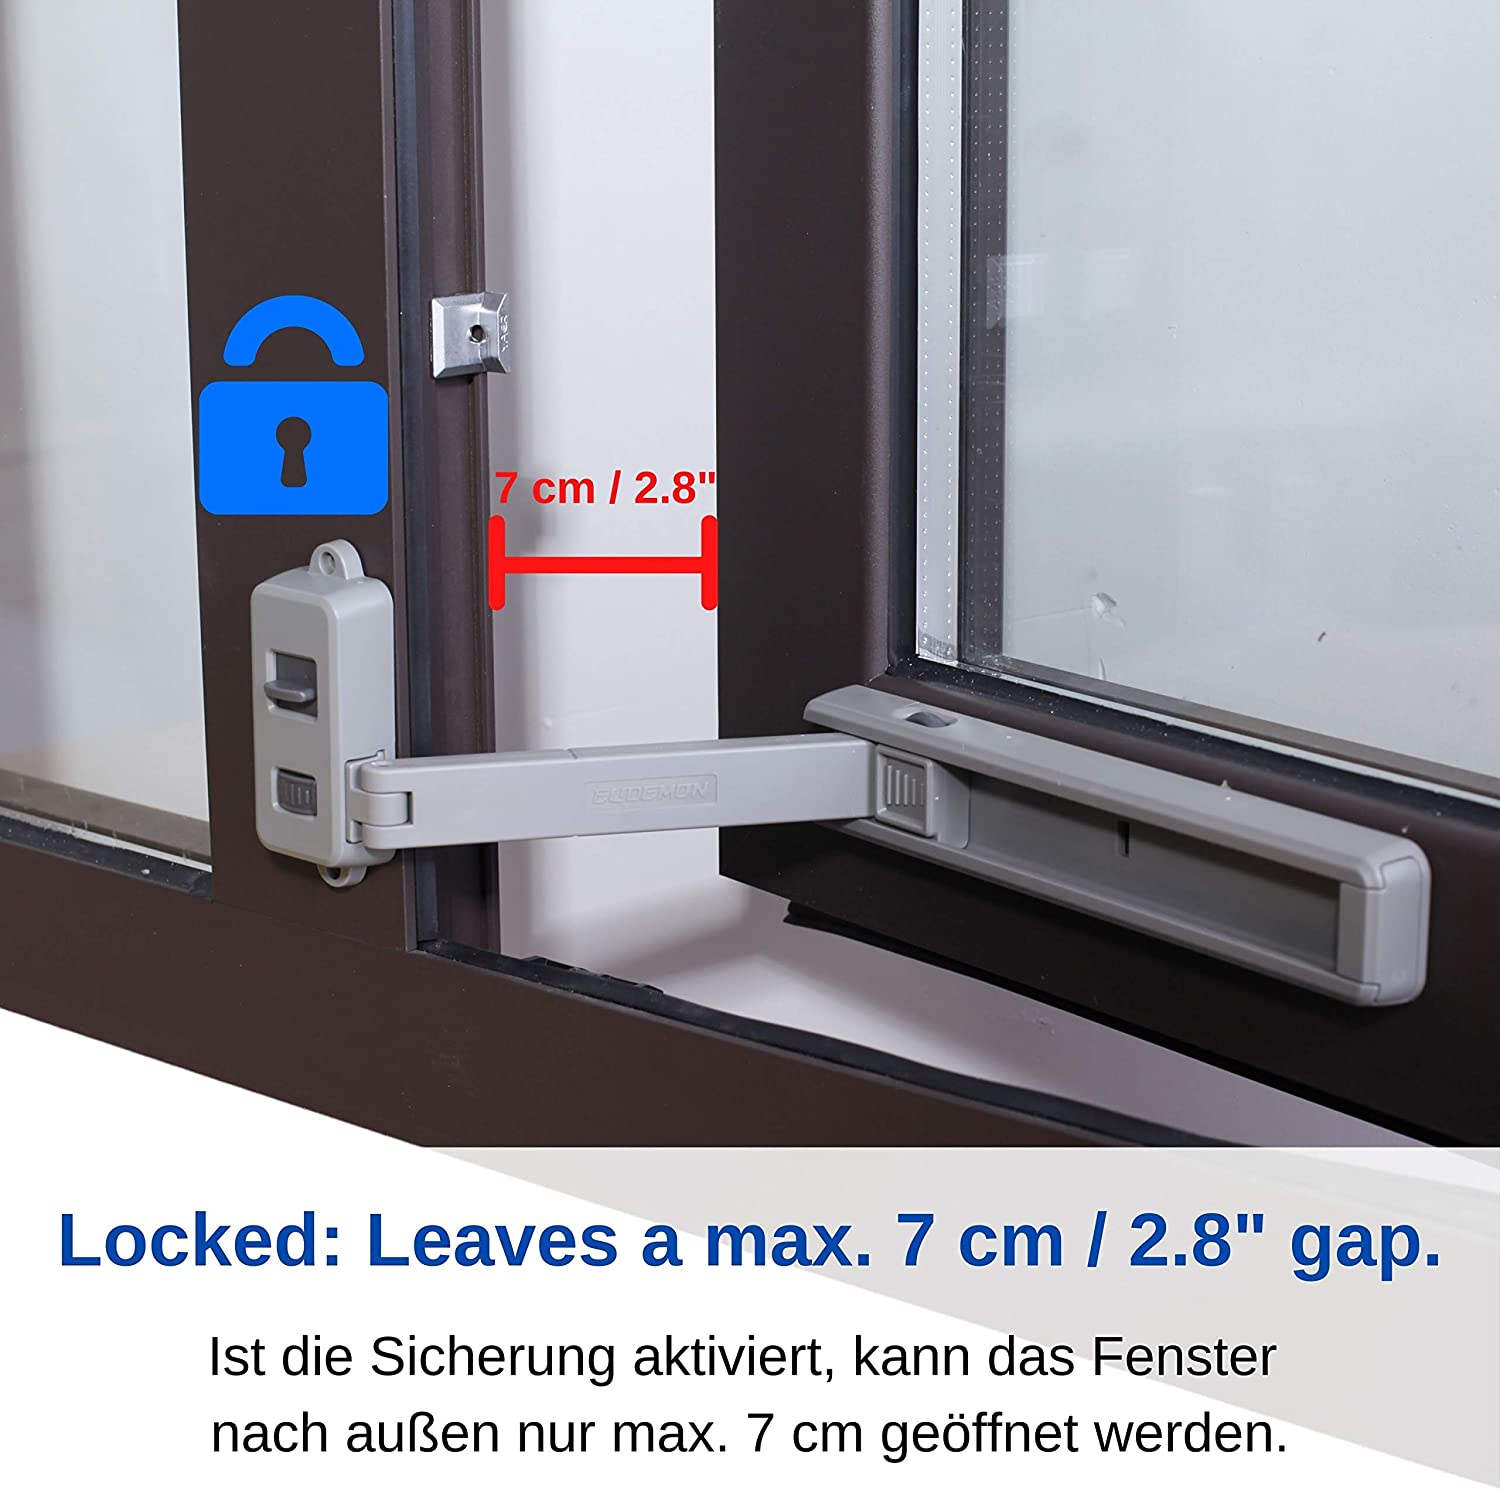 Window Child Safety Lock with 3M VHB Special Adhesive Metal Frames Wooden Dark Grey for Inward /& Outward Opening Windows Window Opening restrictors for Window Frames from 1.5 Width for UPVC